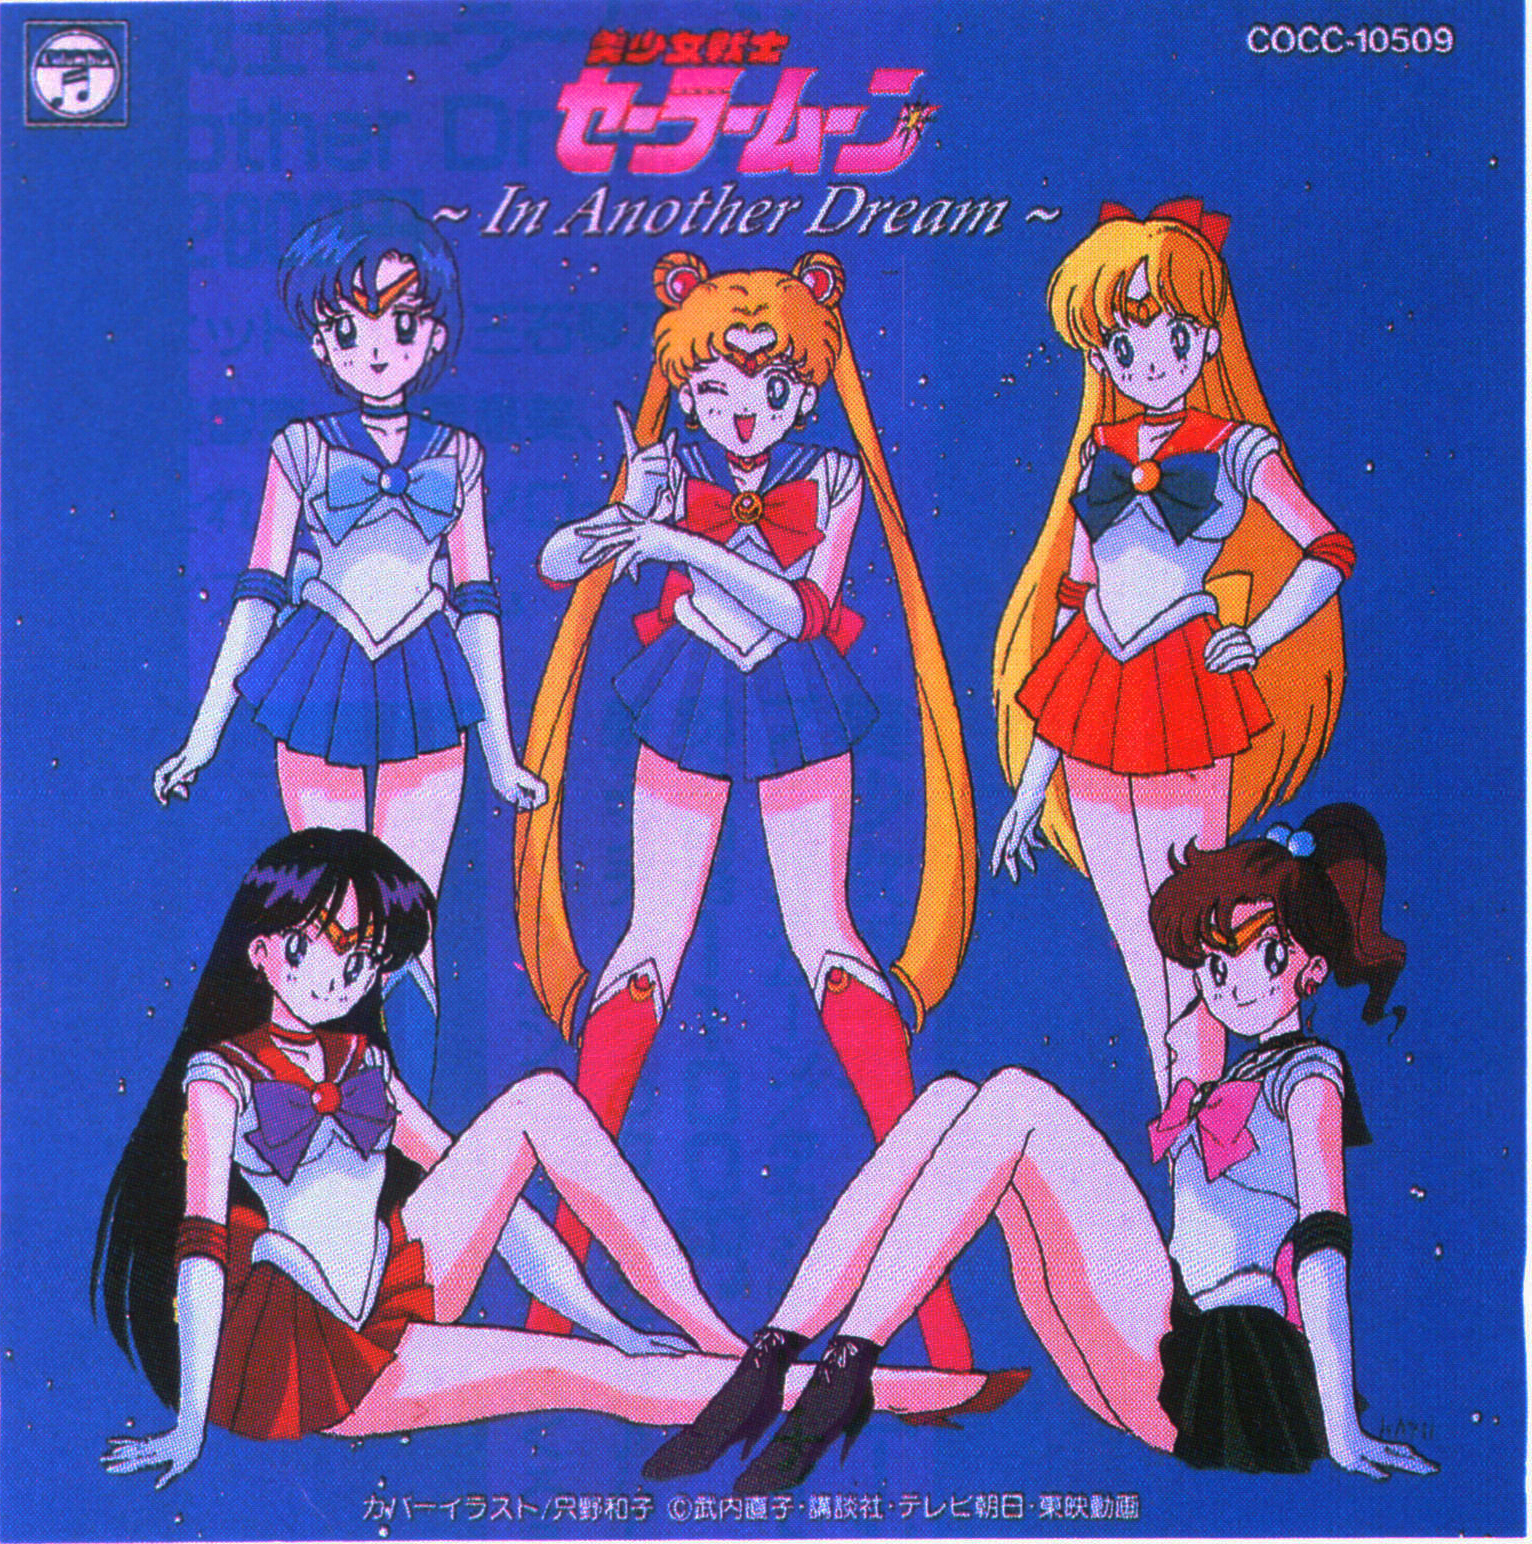 Sailor Moon merchandise: cover of album sold by Nippon Columbia